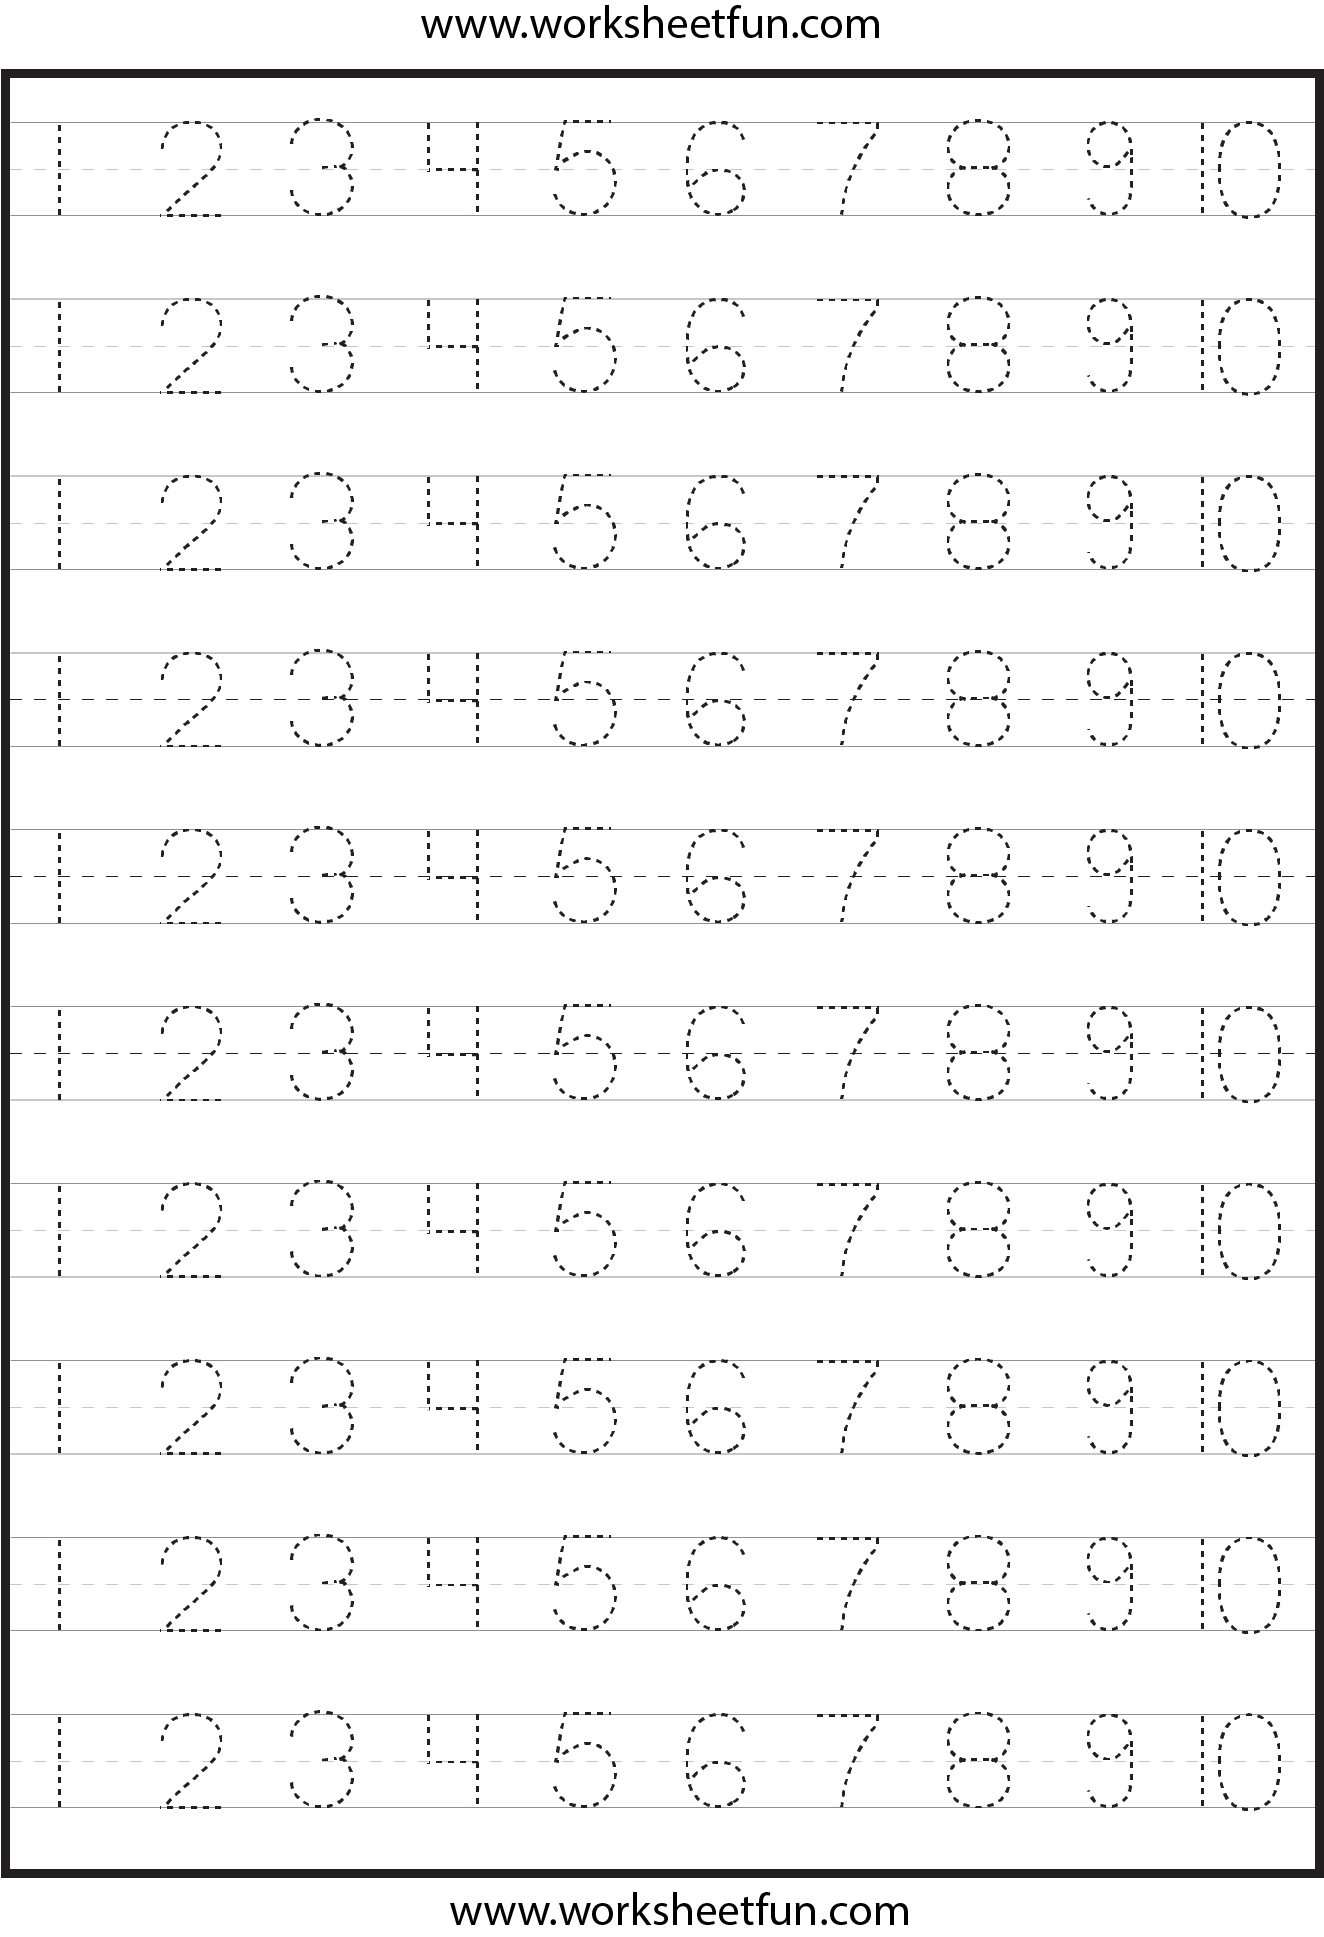 Urdualphabettracingworksheets services best printable urdualphabettracingworksheets services best printable urdu alphabet tracing sheets downloads languages pinterest robcynllc Image collections